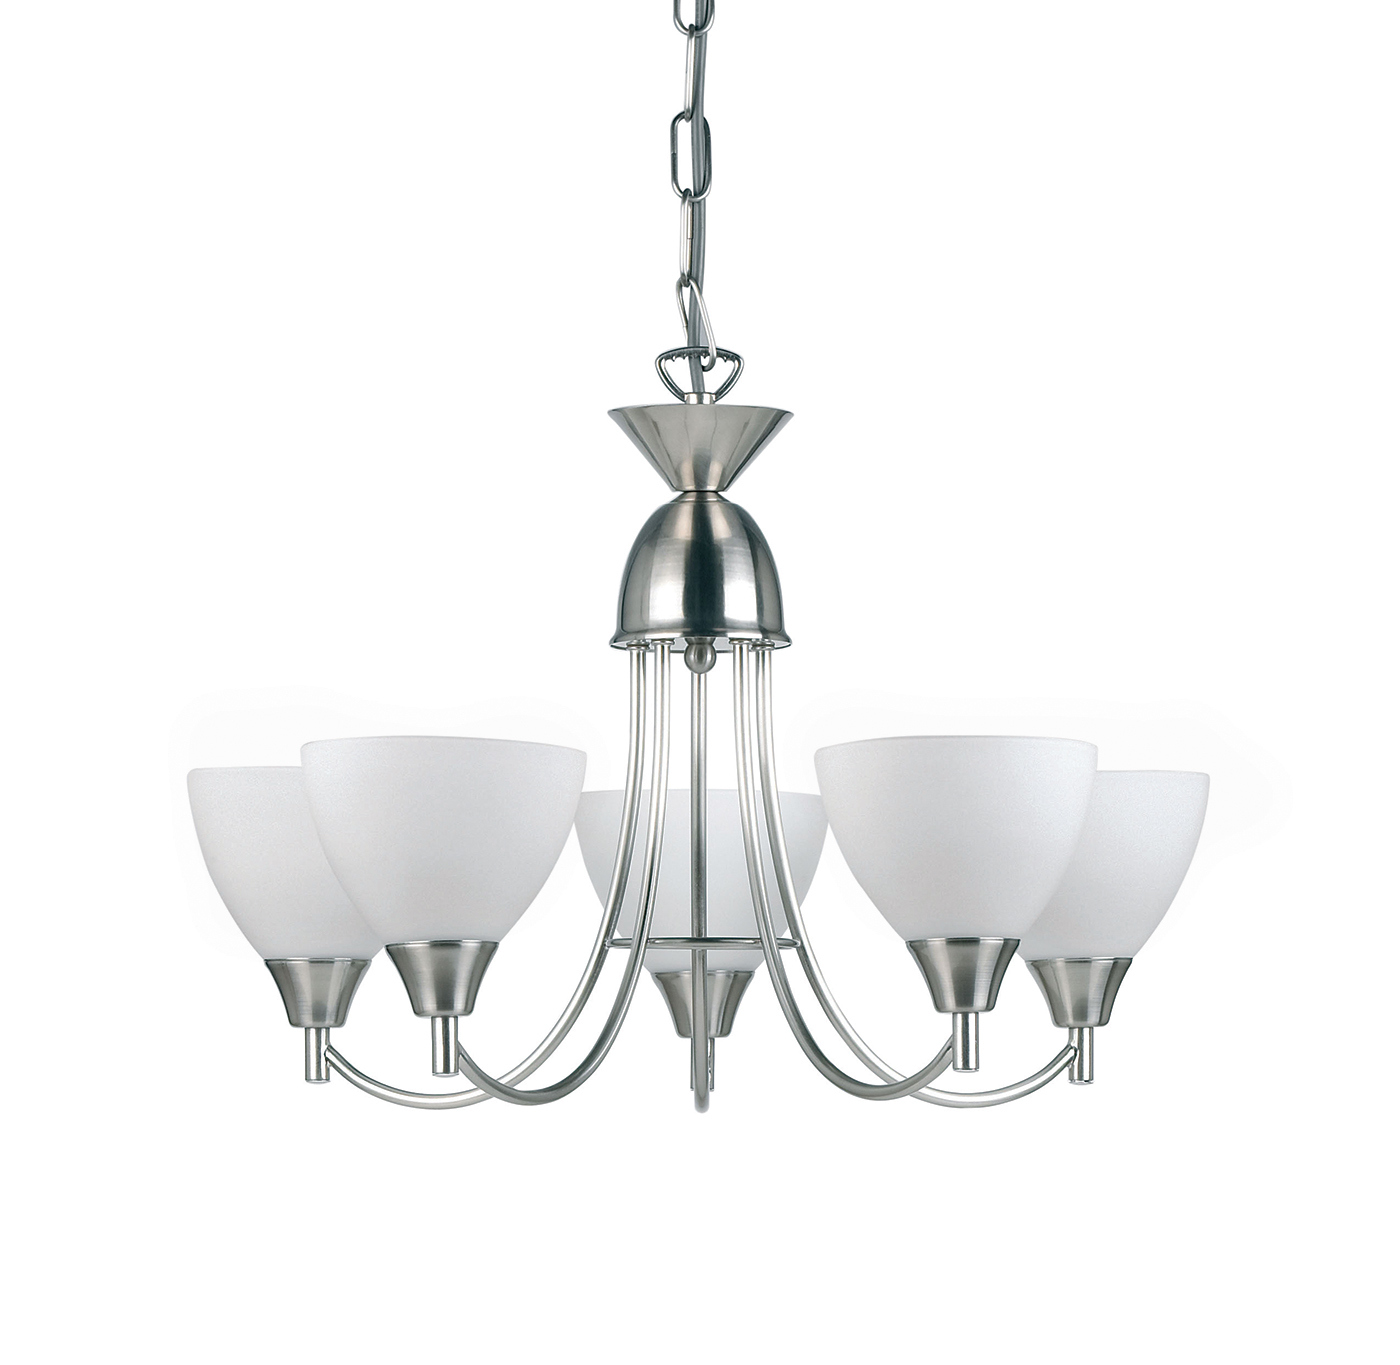 Endon Alton pendant 5x 60W Satin chrome effect plate & matt opal glass